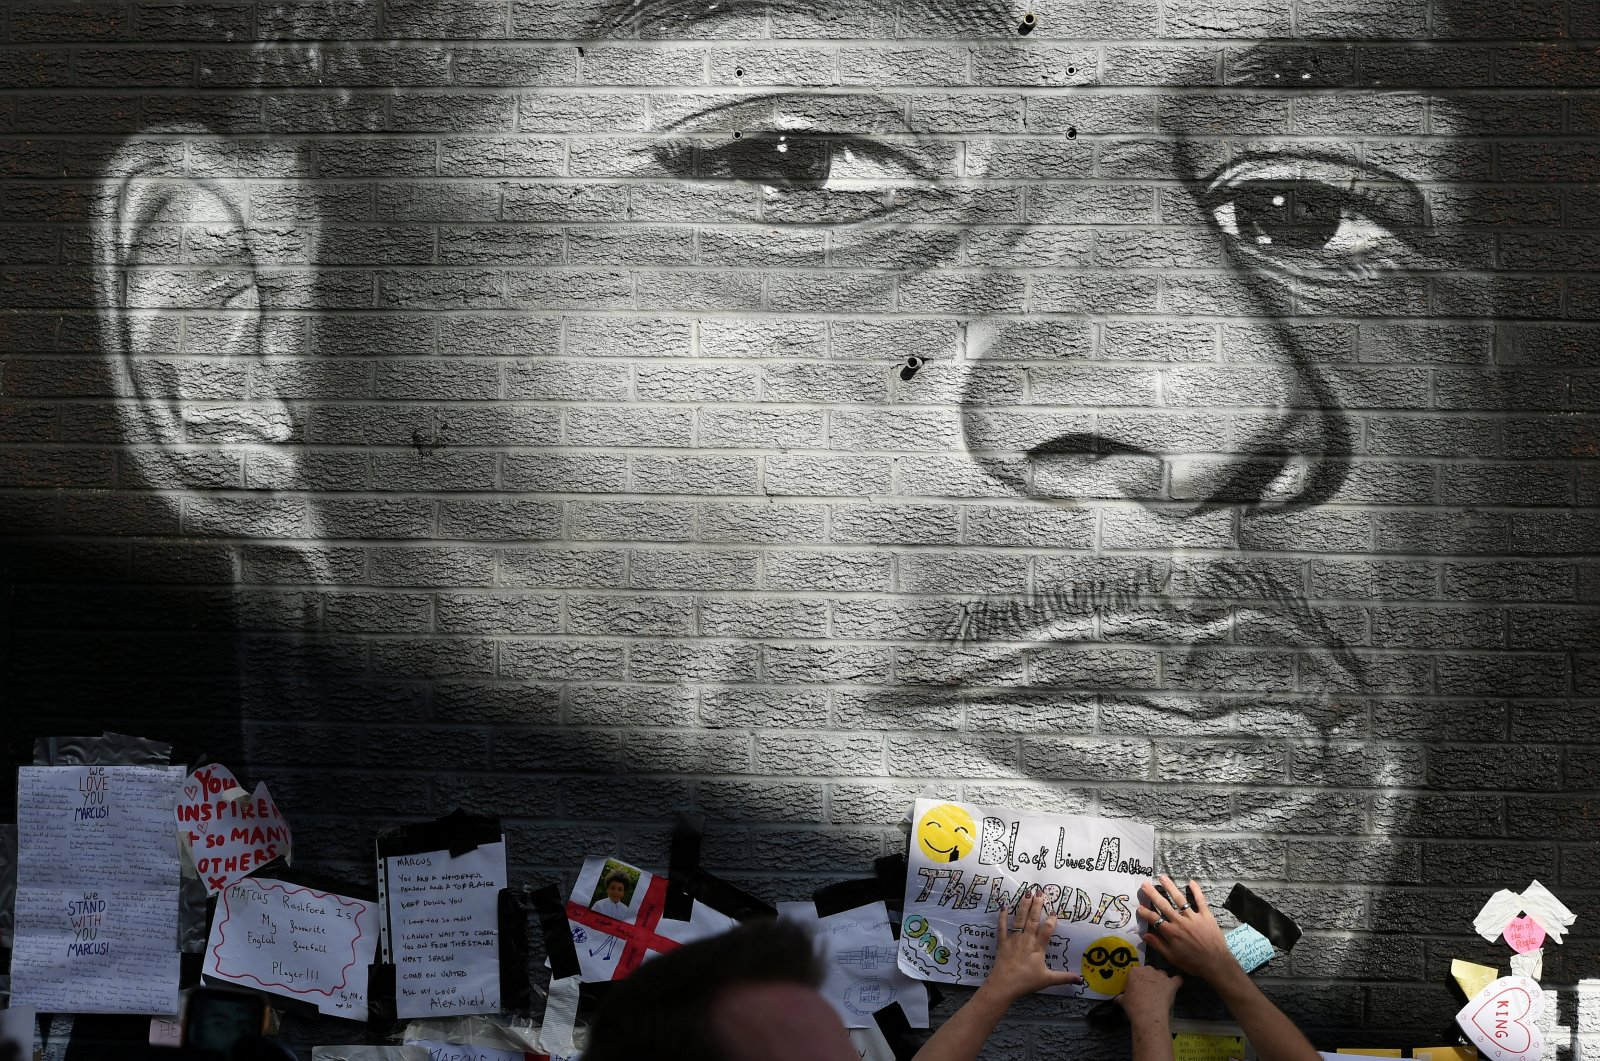 Stand Up to Racism Demonstration at the Marcus Rashford mural after it was defaced following the Euro 2020 Final between Italy and England, Withington, Manchester, Britain, July 13, 2021. (Reuters Photo)